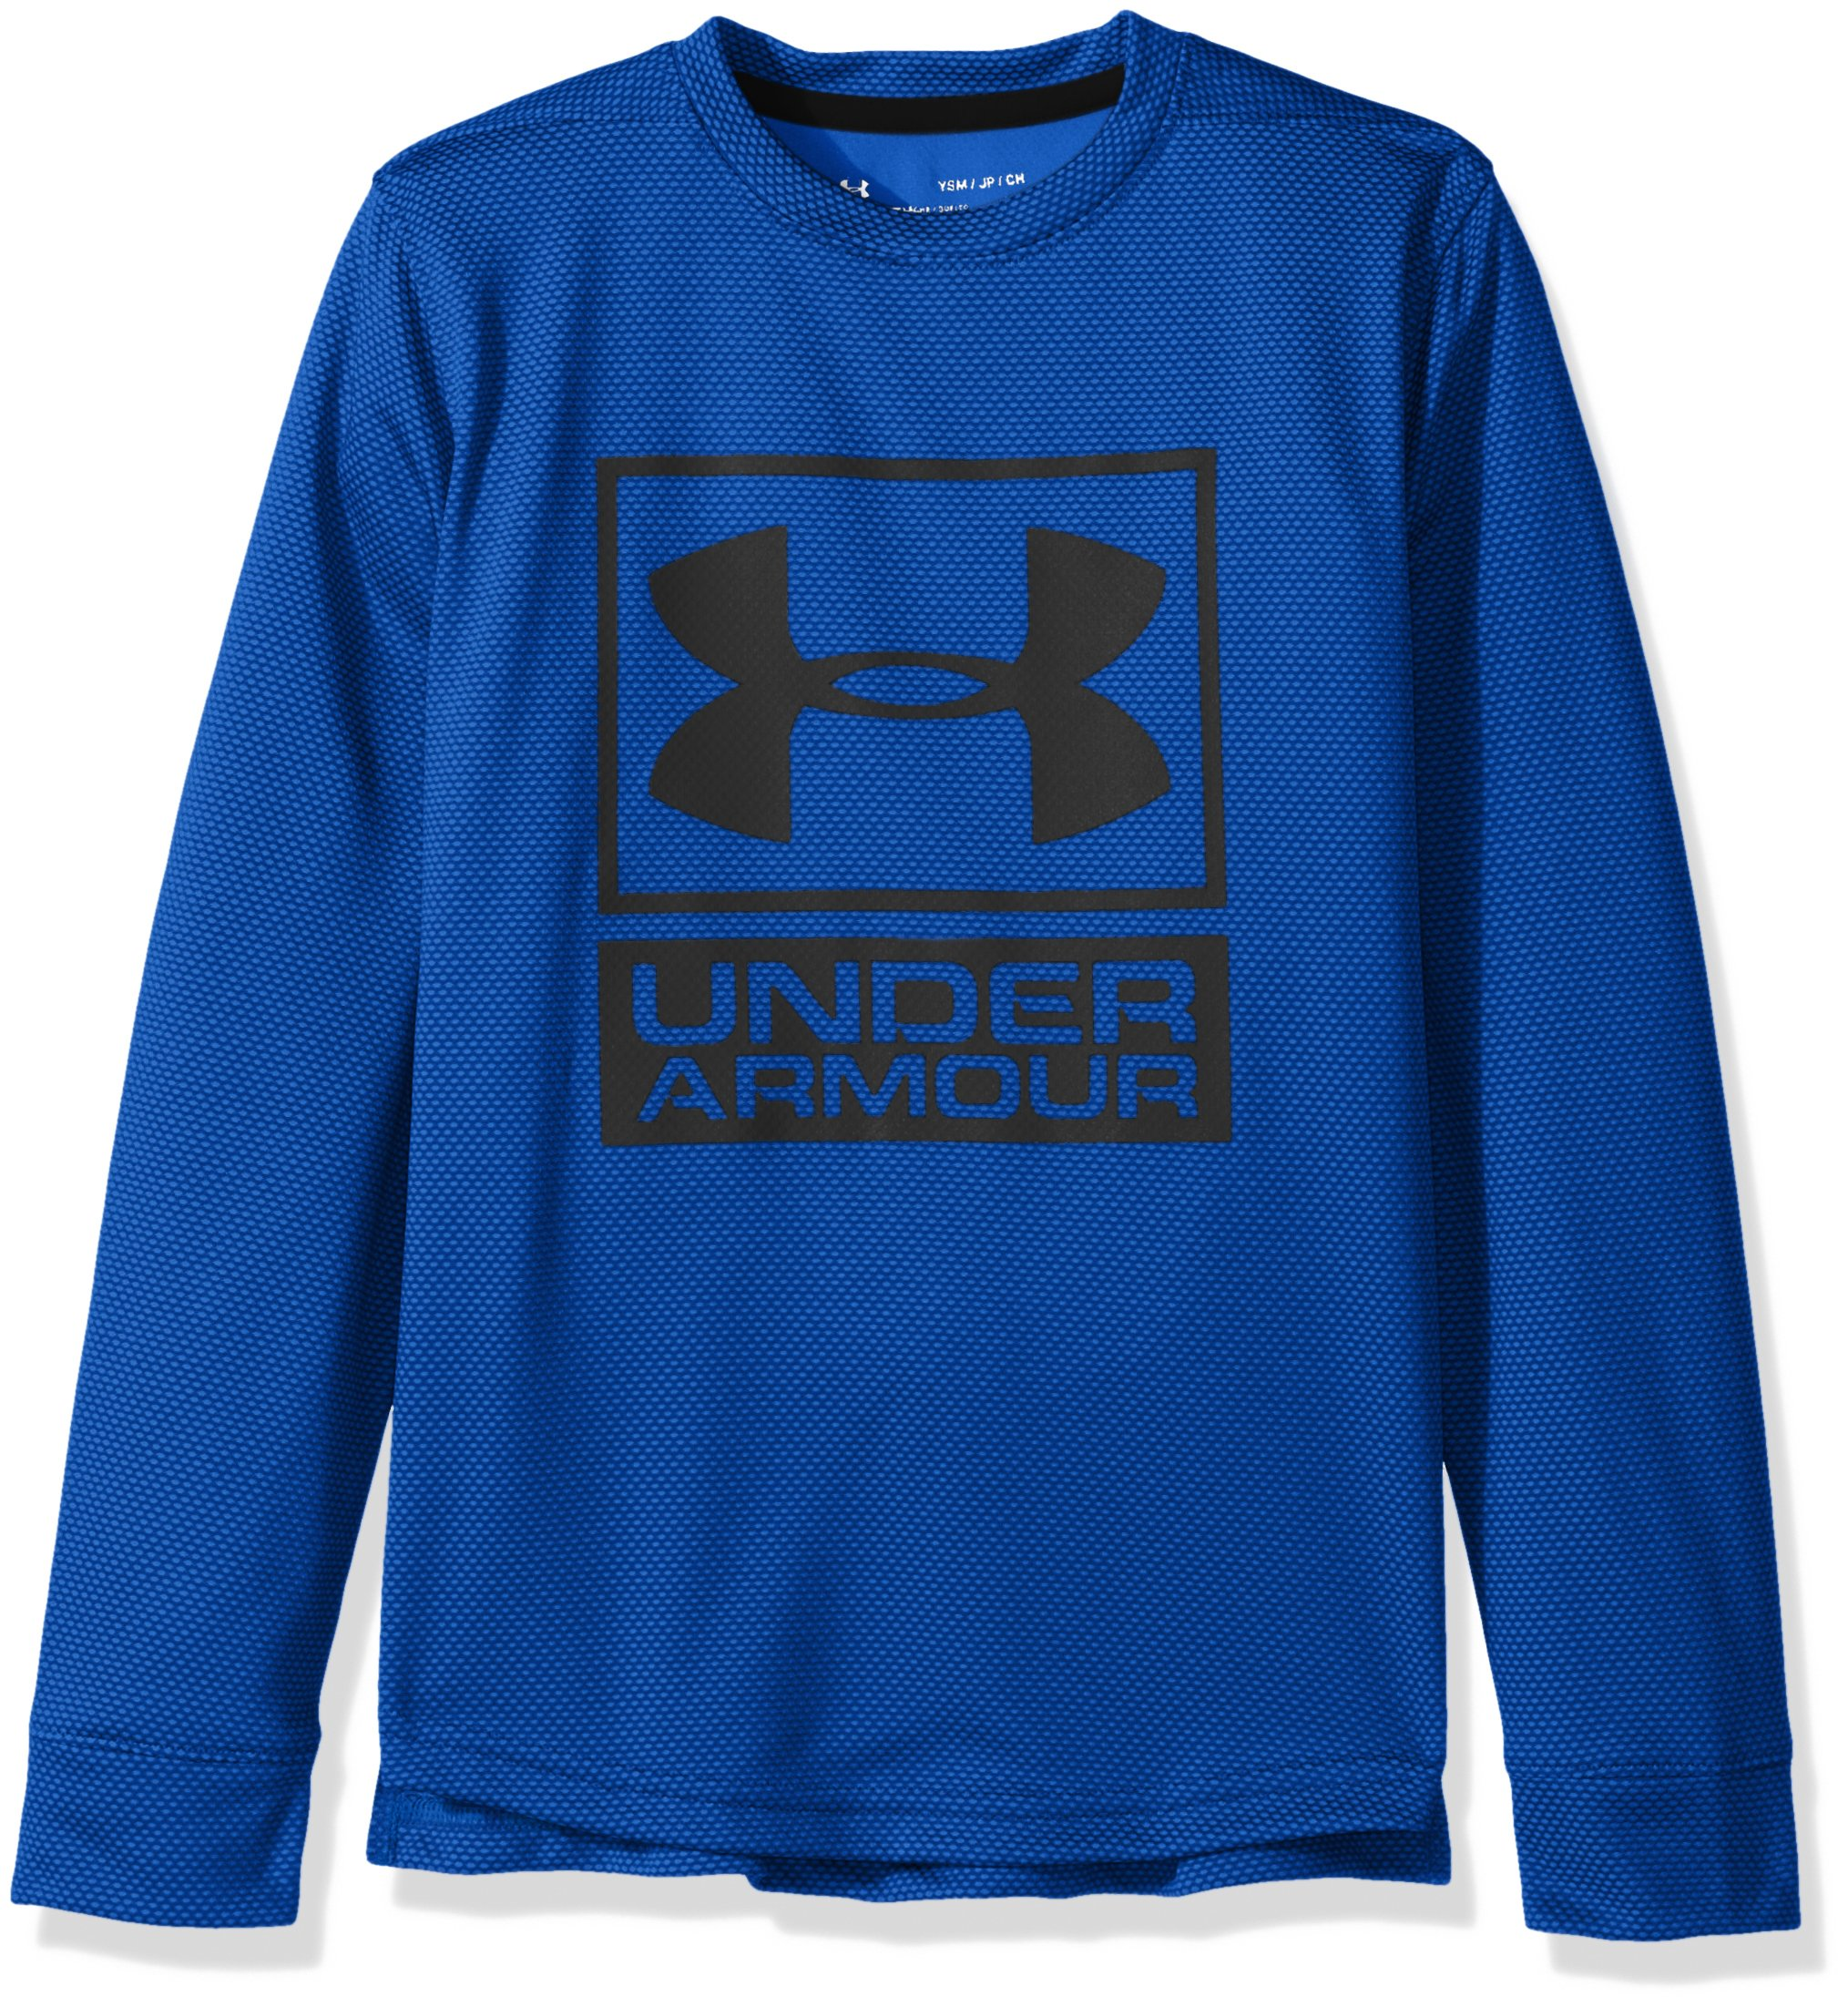 Under Armour Boys' Tech Textured Crew,Ultra Blue /Black, Youth Medium by Under Armour